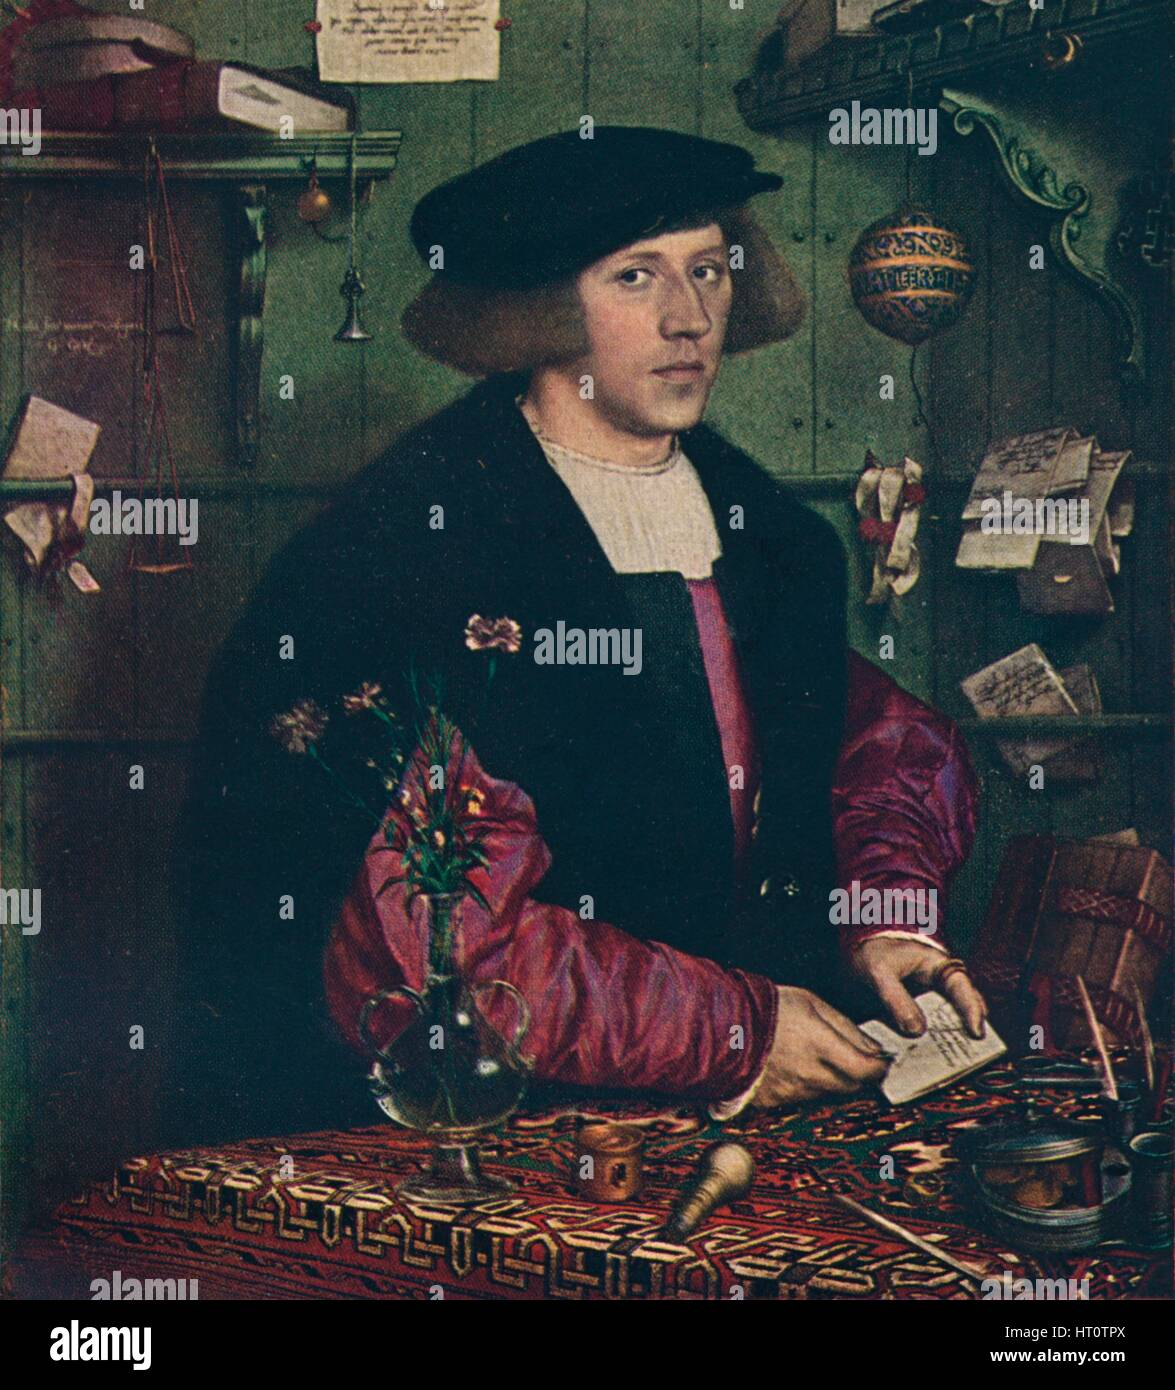 'The Merchant Georg Gisze', 1532. Artist: Hans Holbein the Younger. - Stock Image